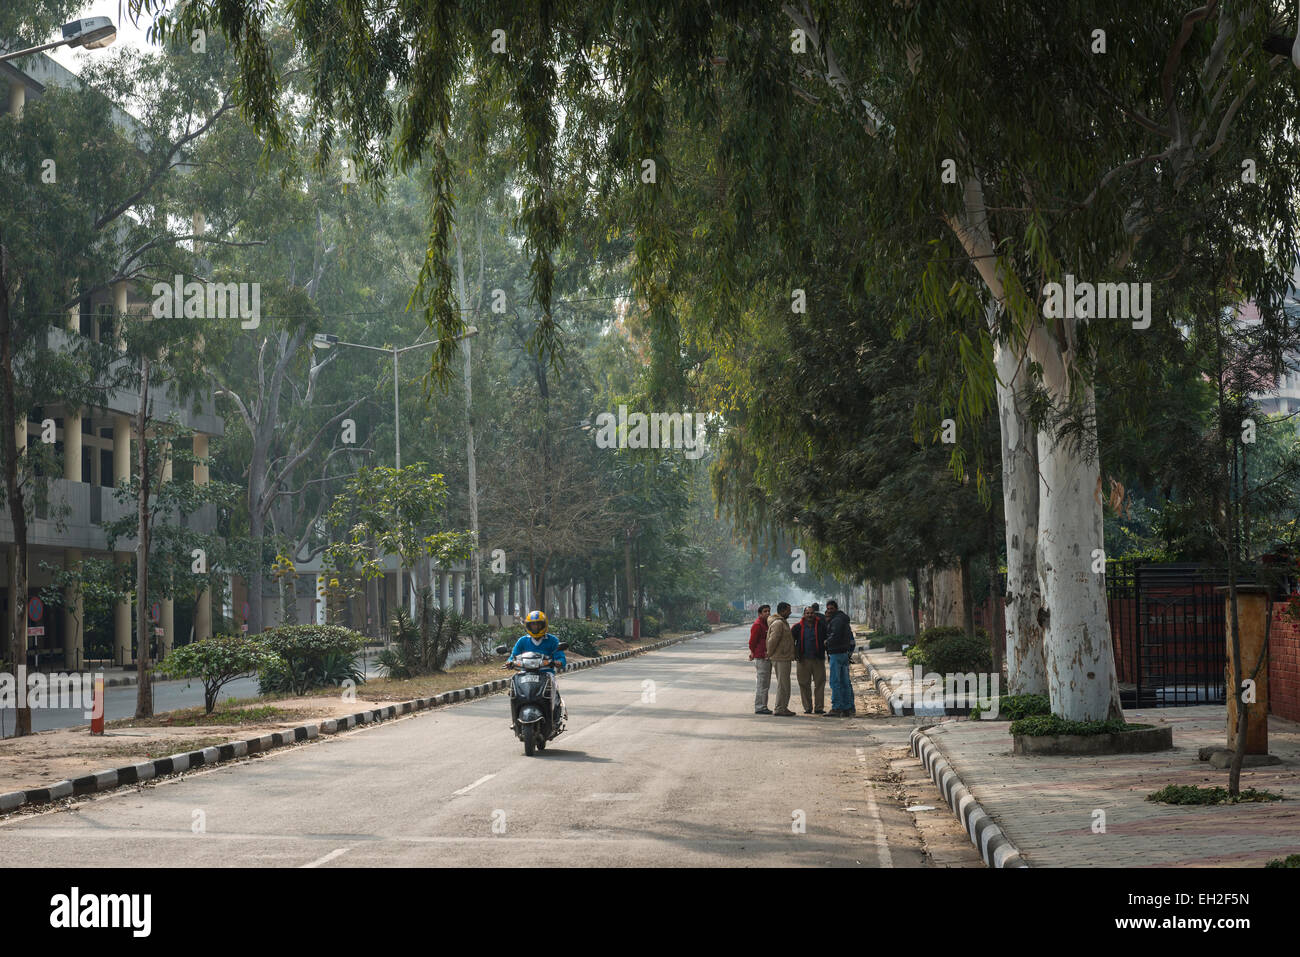 The wide tree-lined avenues of the modern city of Chandigarh, India - Stock Image